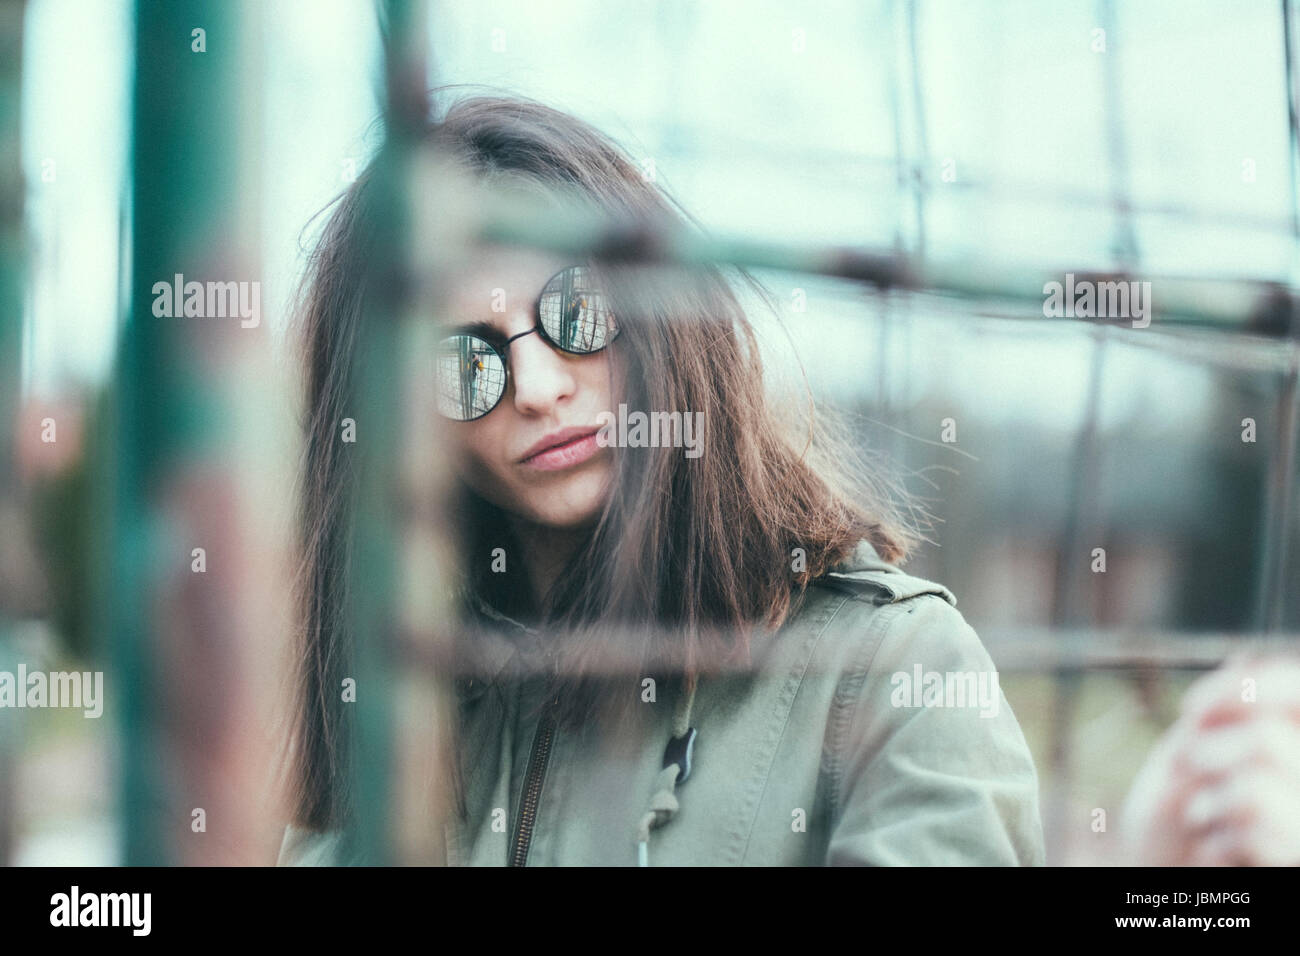 Woman at wire fence - Stock Image